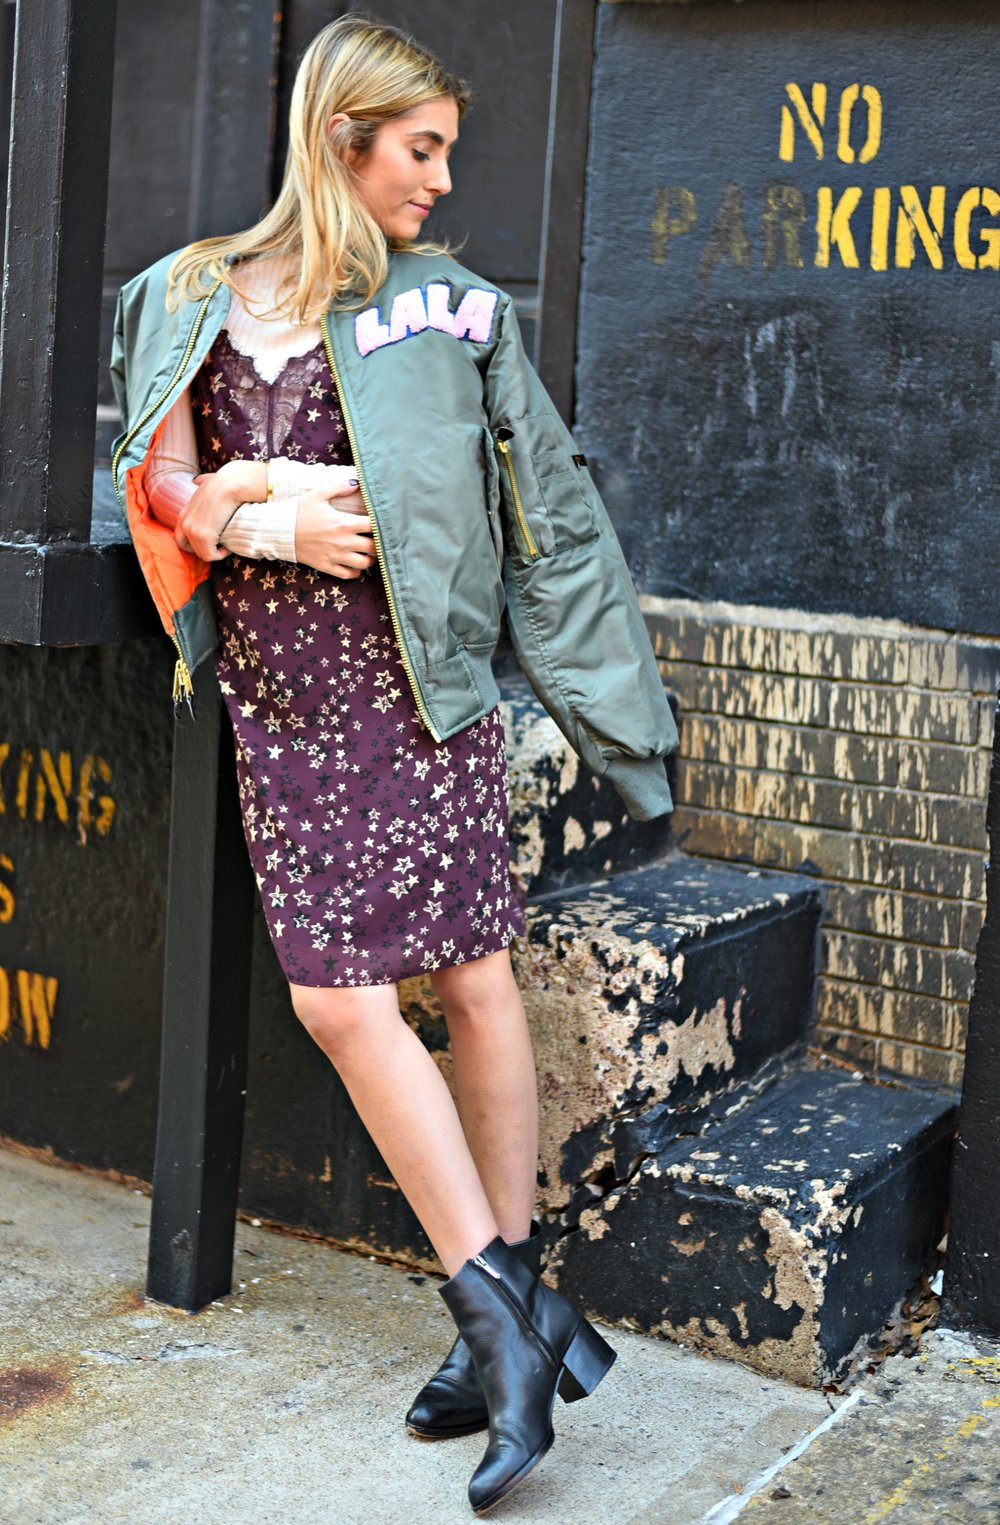 CHARLOTTE BICKLEY YIN 2MY YANG SISTER FASHION BLOGGERS NYC UNEMPLOYED DENIM PERSONALIZED BOMBER JACKET POST 10.jpg